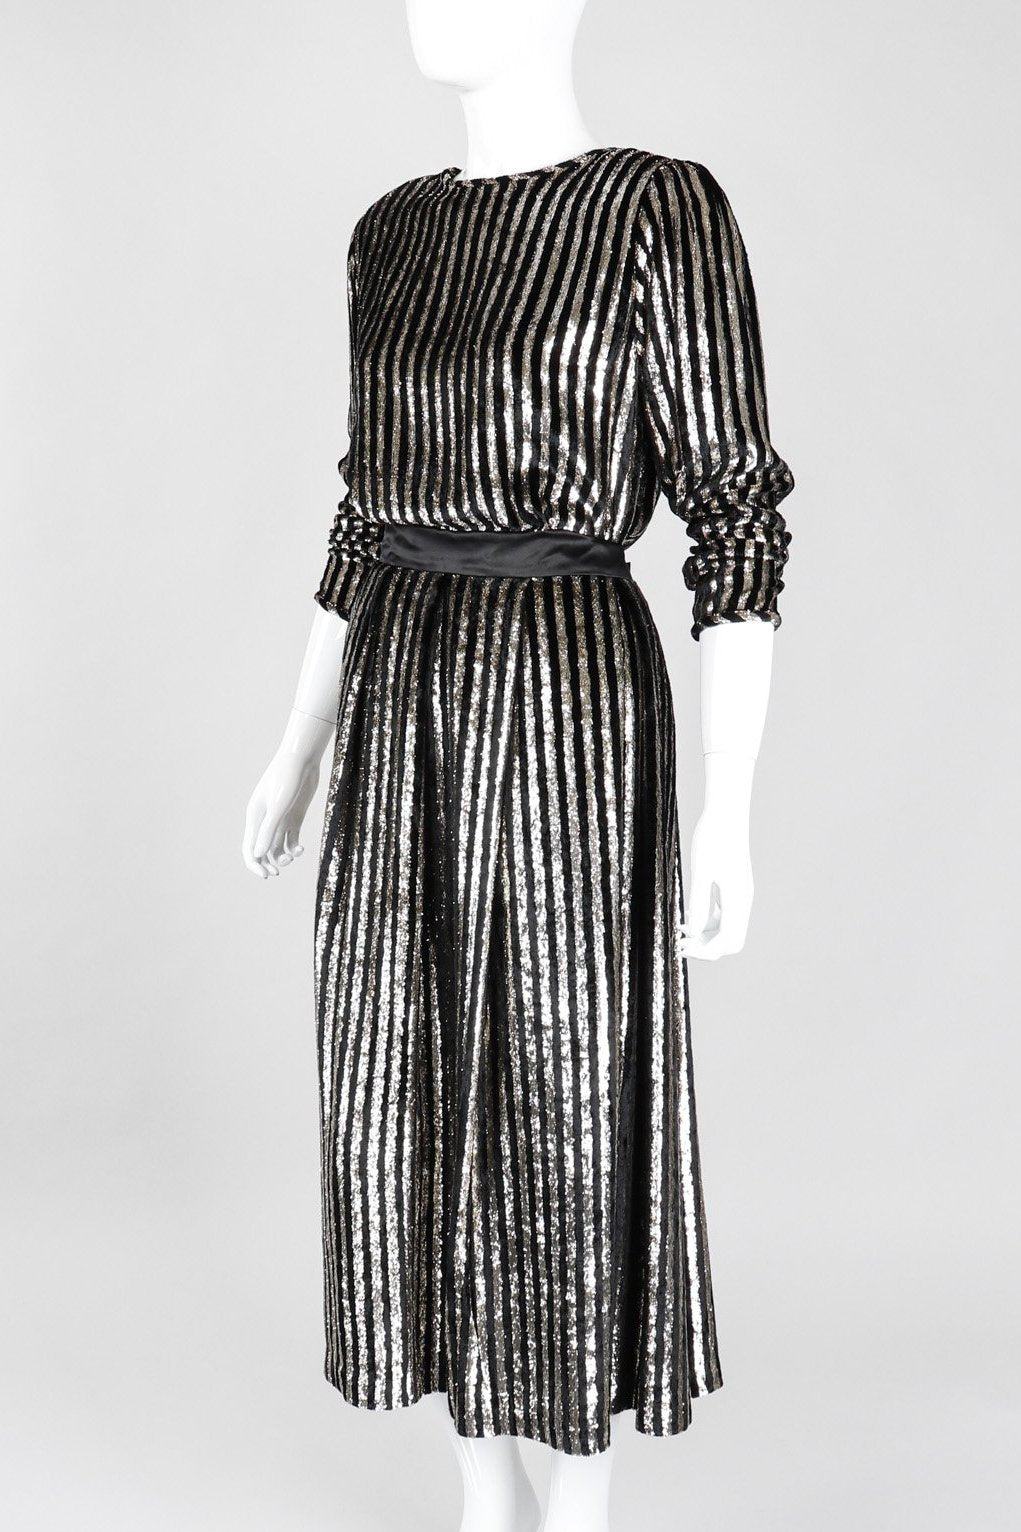 Recess Los Angeles Vintage Caroline Charles Metallic Gold Striped Velvet Lamé Top and Skirt Set